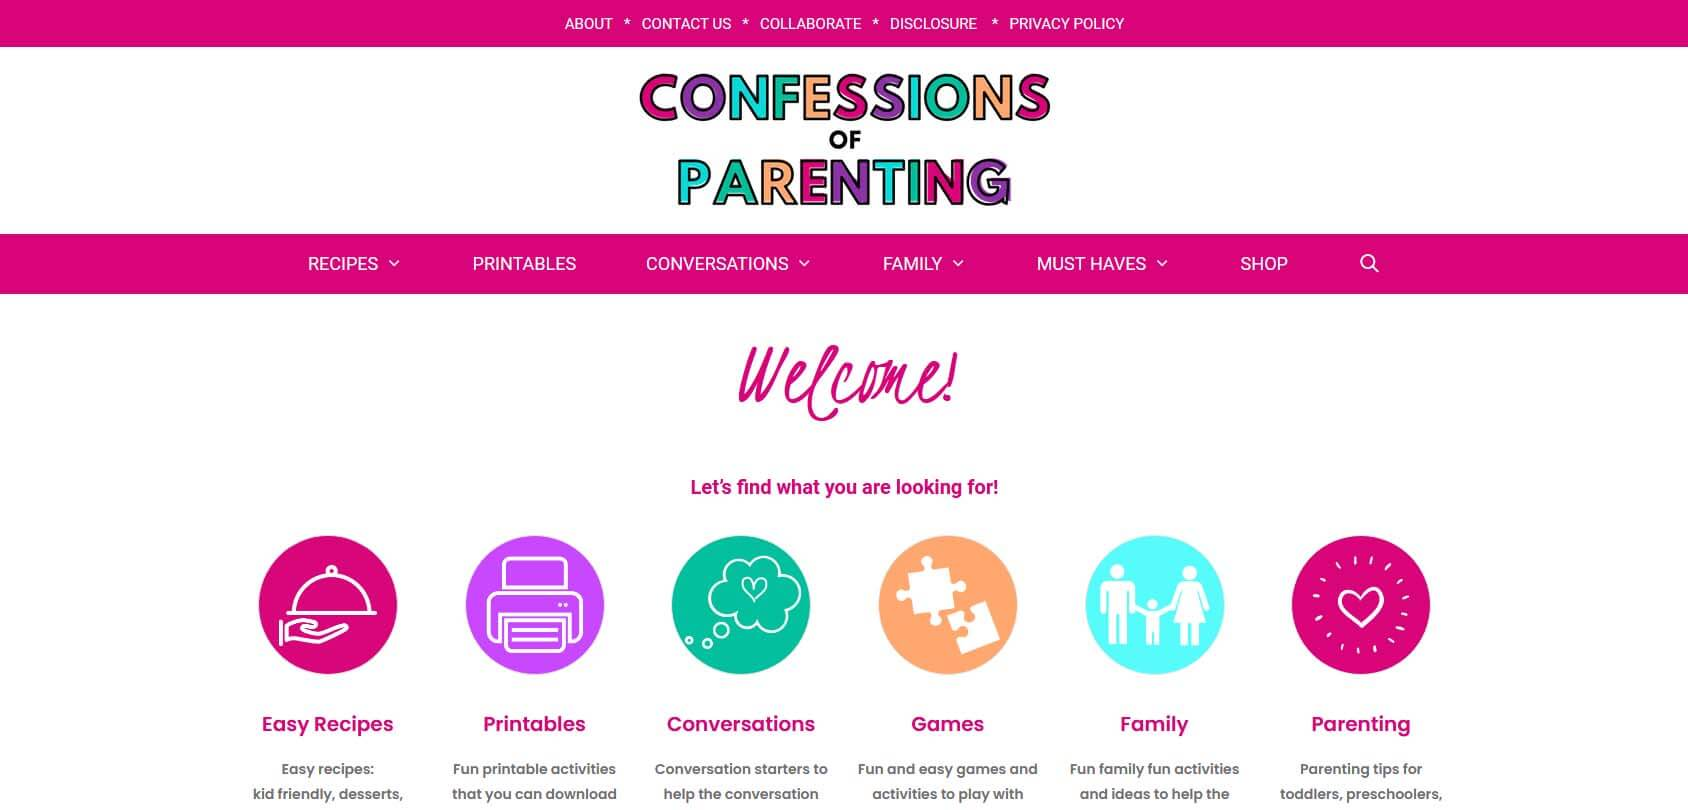 Confessions of Parenting Homepage